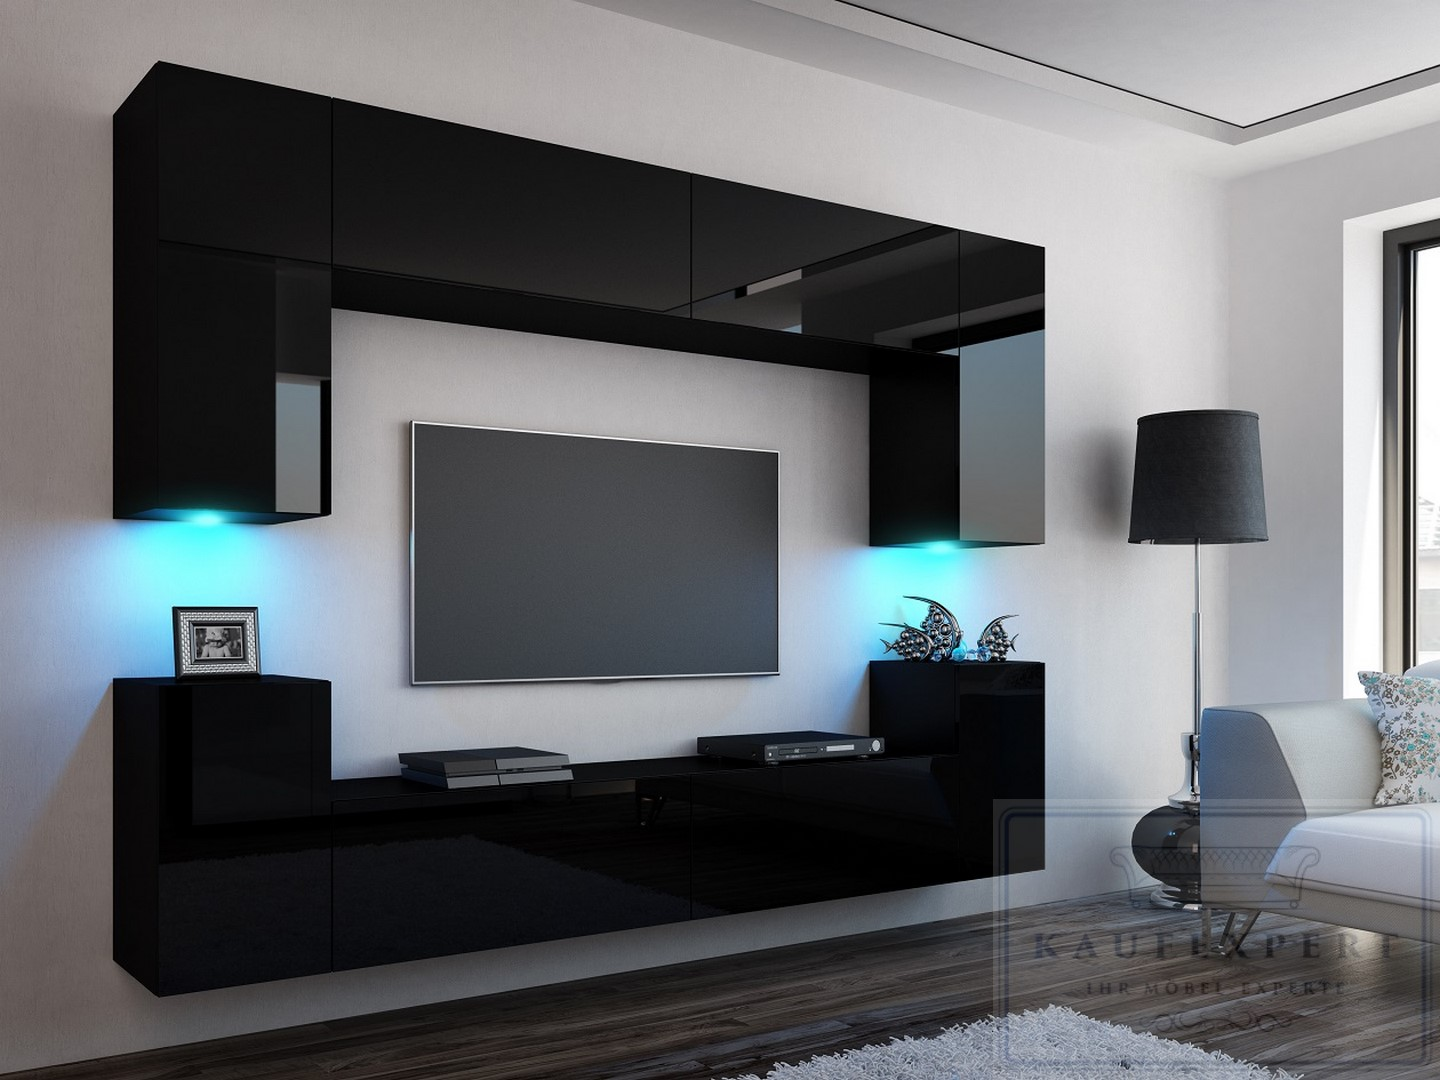 neuheit wohnwand concept mdf 1 schwarz hochglanz. Black Bedroom Furniture Sets. Home Design Ideas